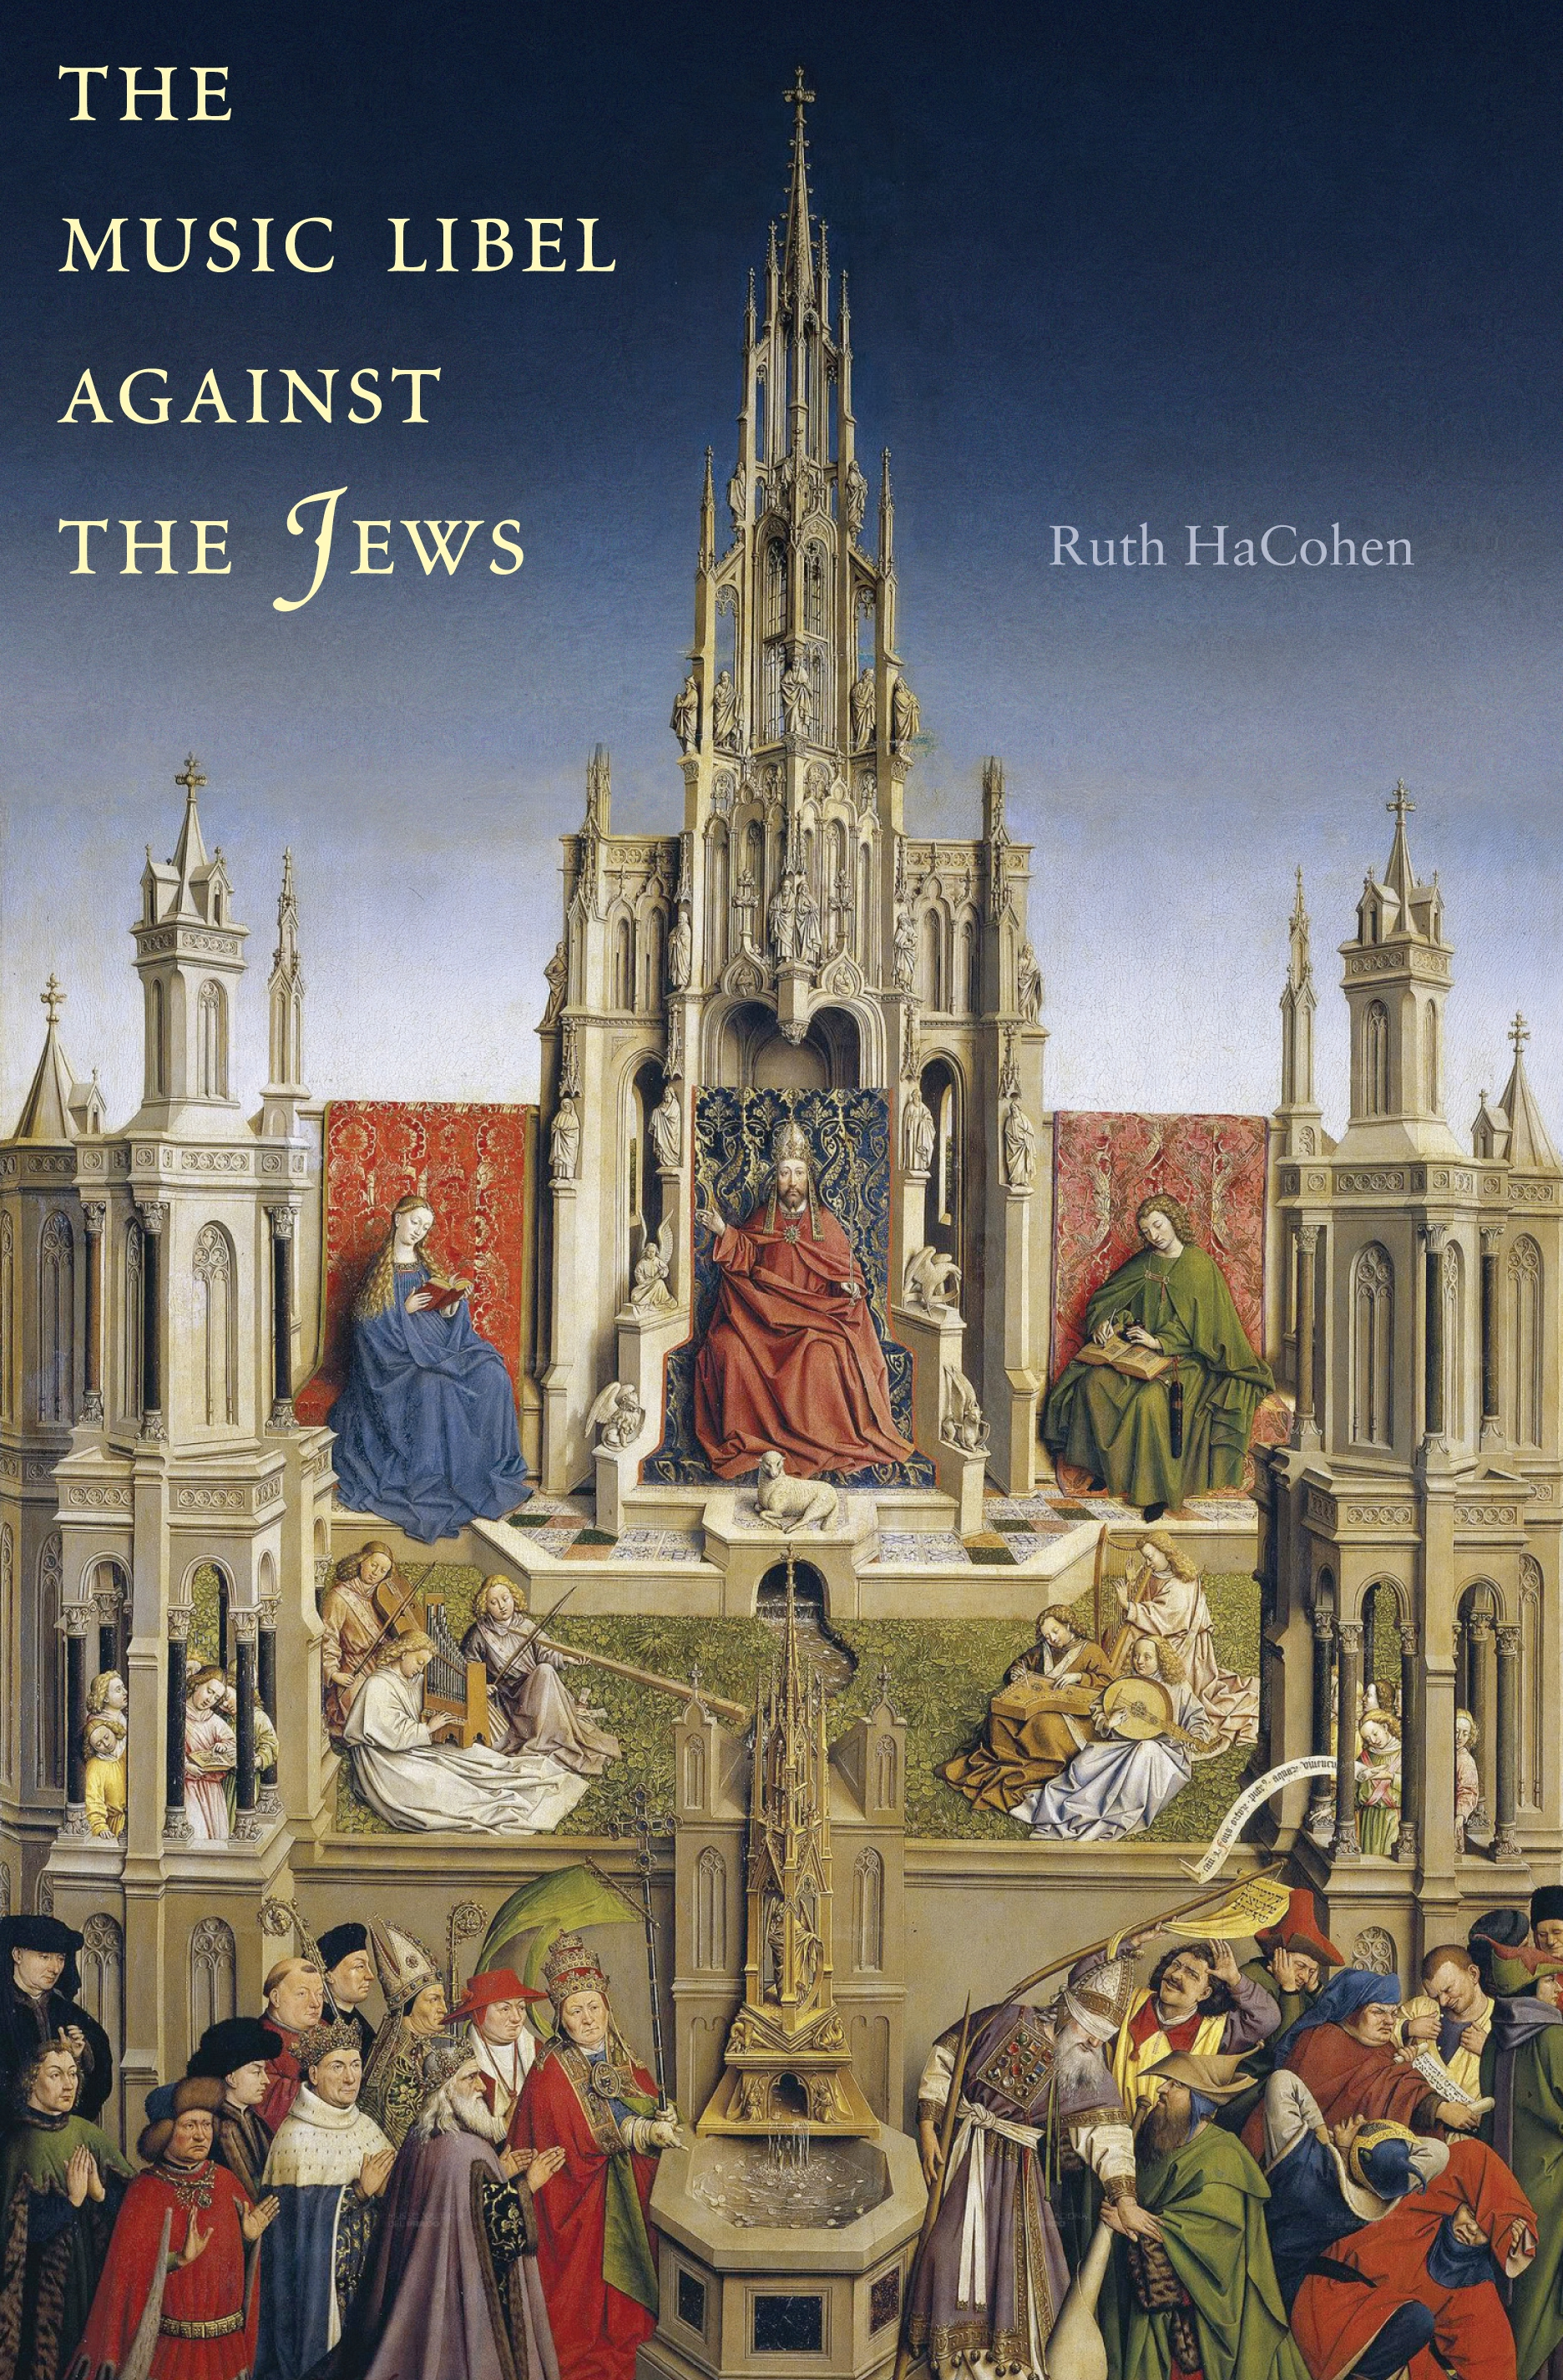 The Music Libel Against the Jews